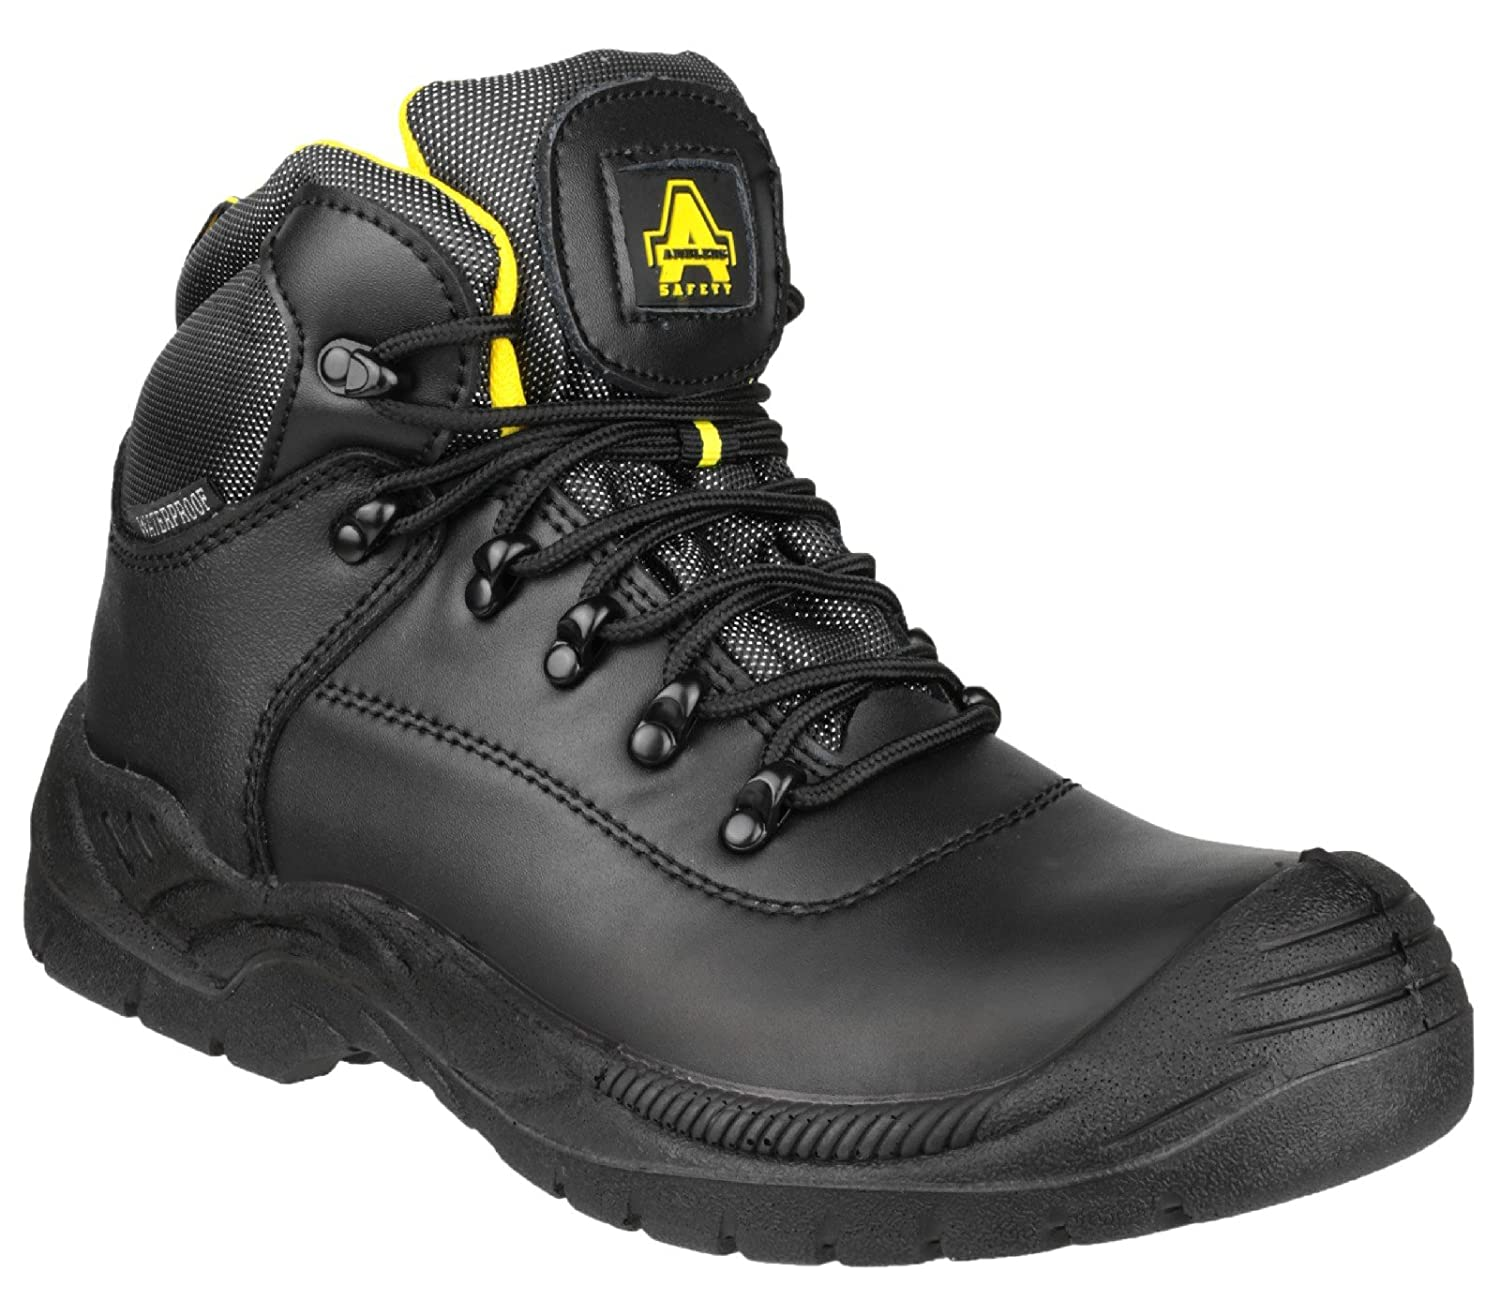 Amblers Safety FS220 Unisex S3 W//P Safety Boots Black